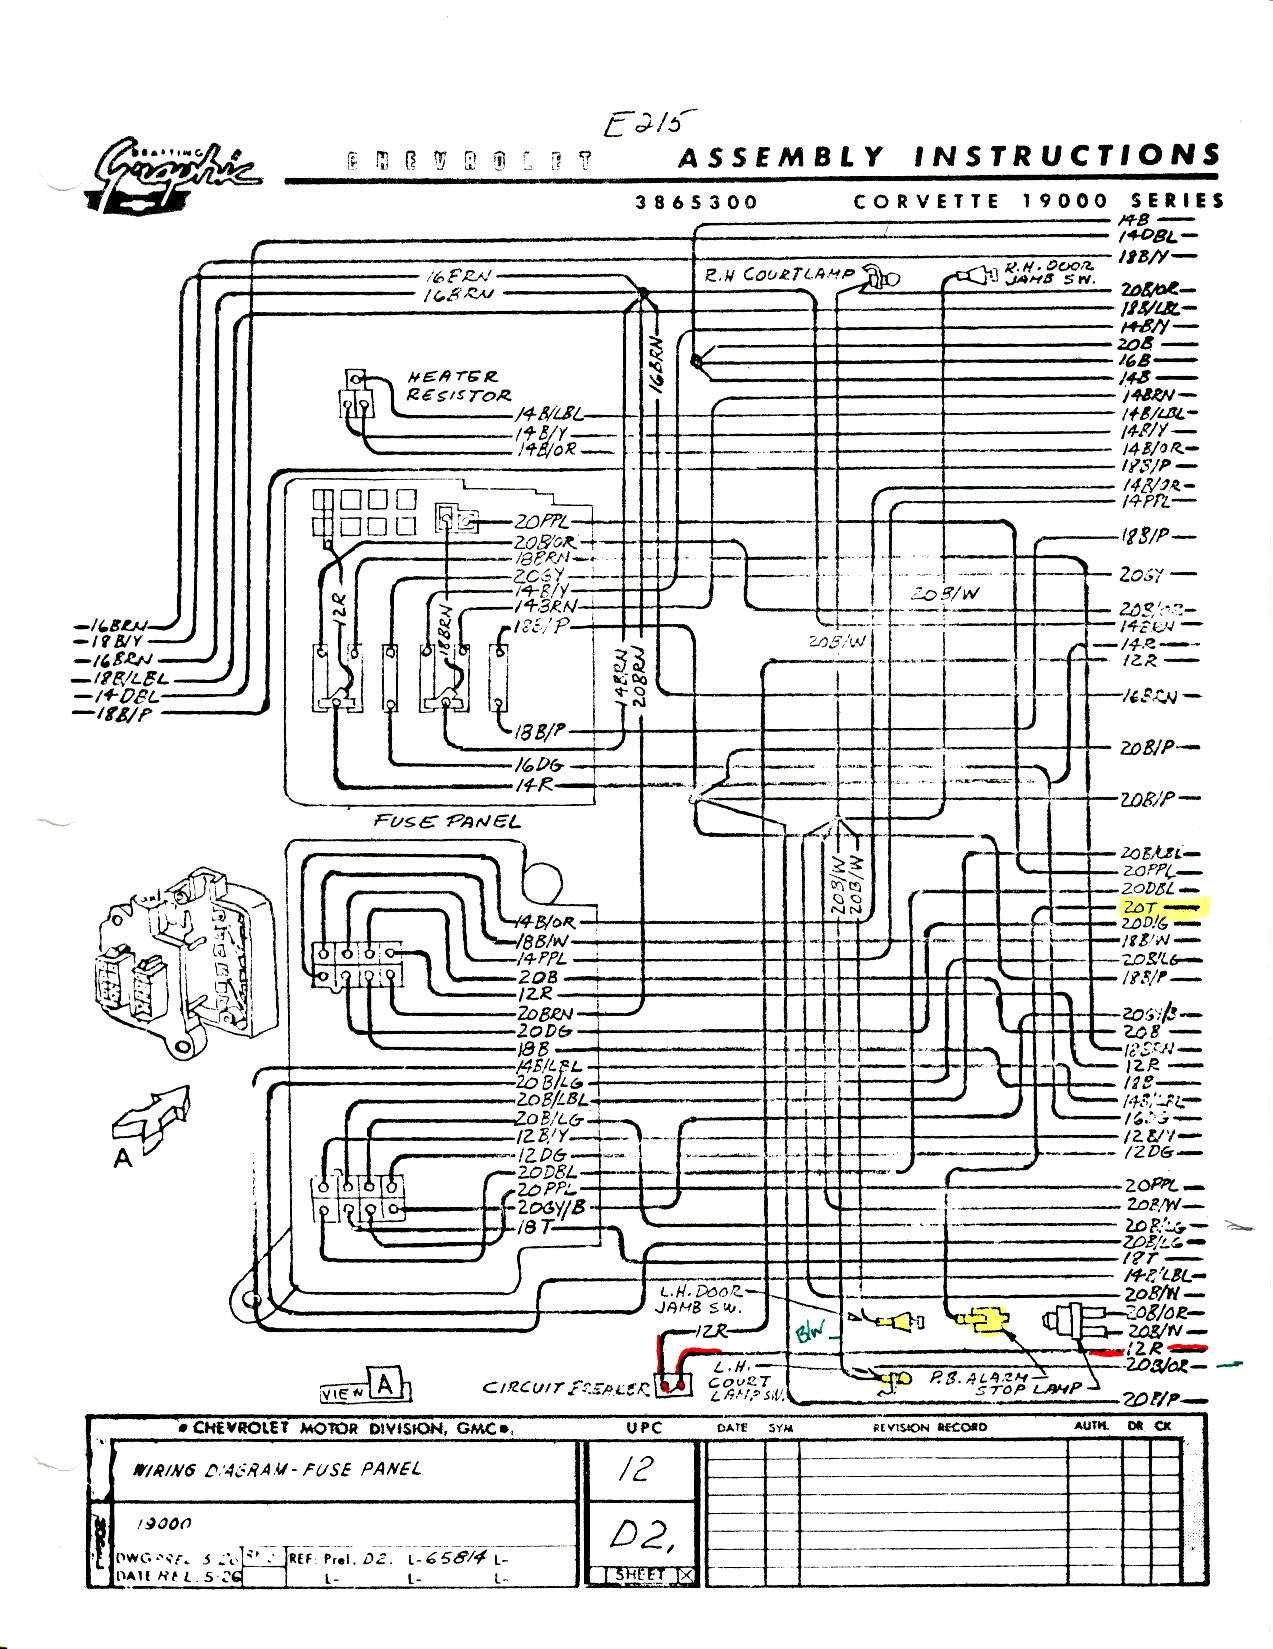 hight resolution of 1996 corvette wiring diagram